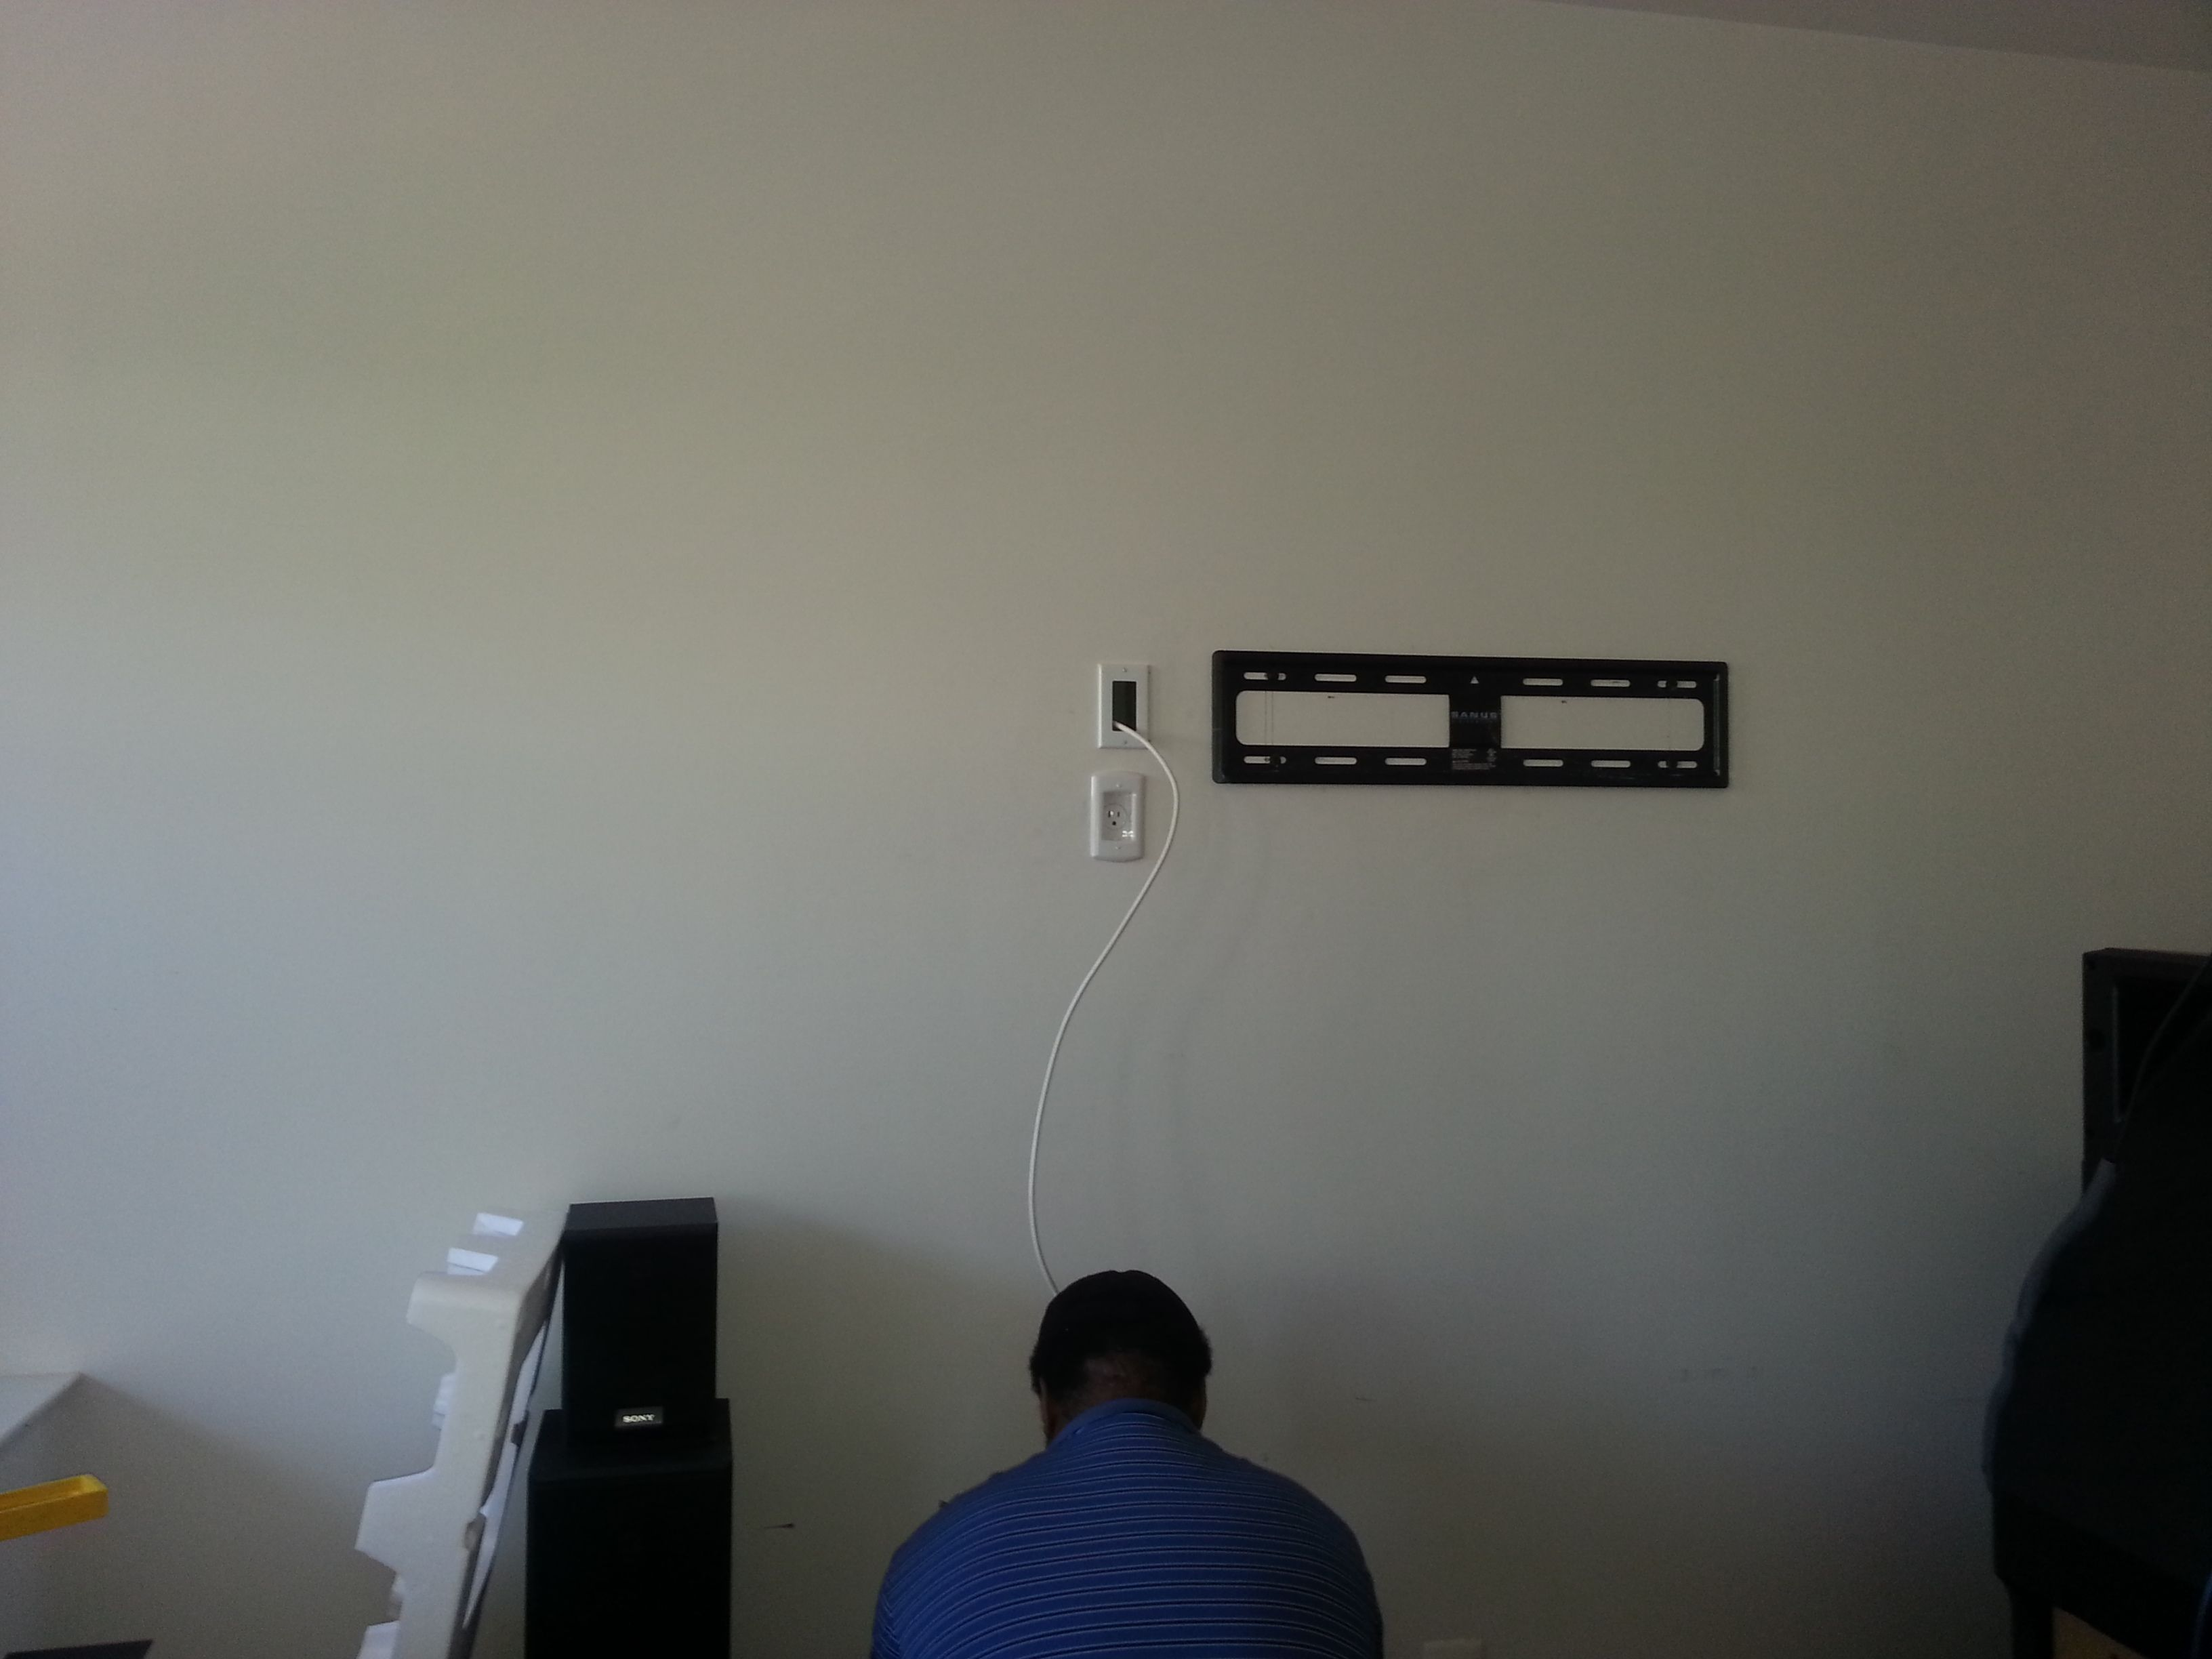 Amazing Hdtv Wall Mount With Electrical Outlet And Low Voltage Wiring Outlet Wiring 101 Tzicihahutechinfo